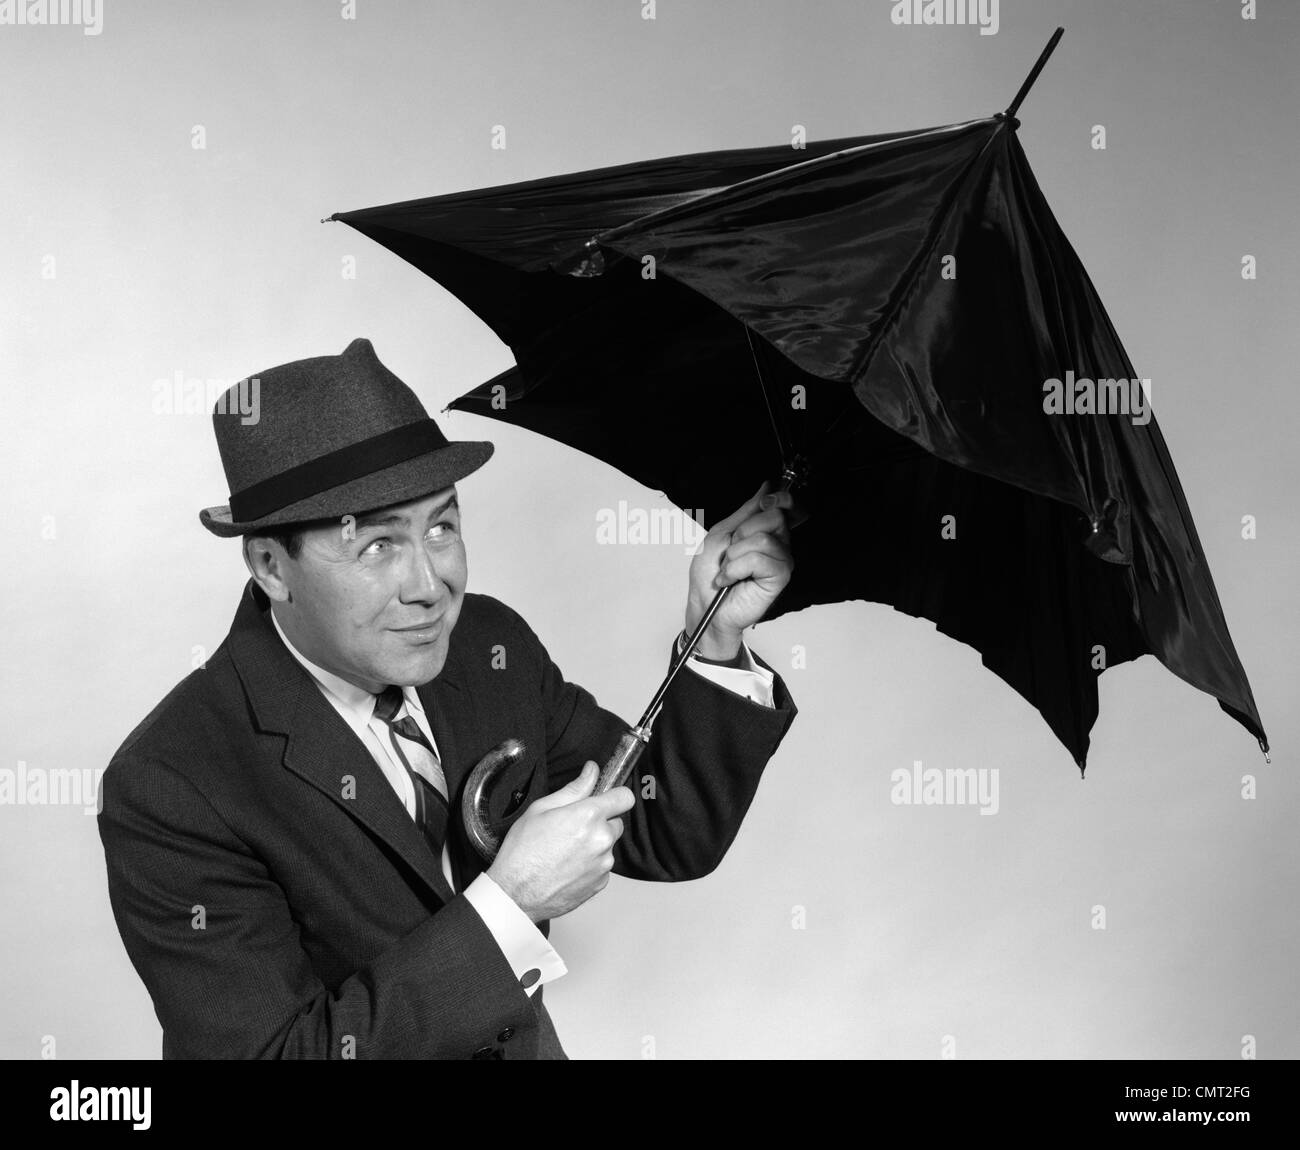 1960 L'OUVERTURE D'AFFAIRES UMBRELLA Photo Stock